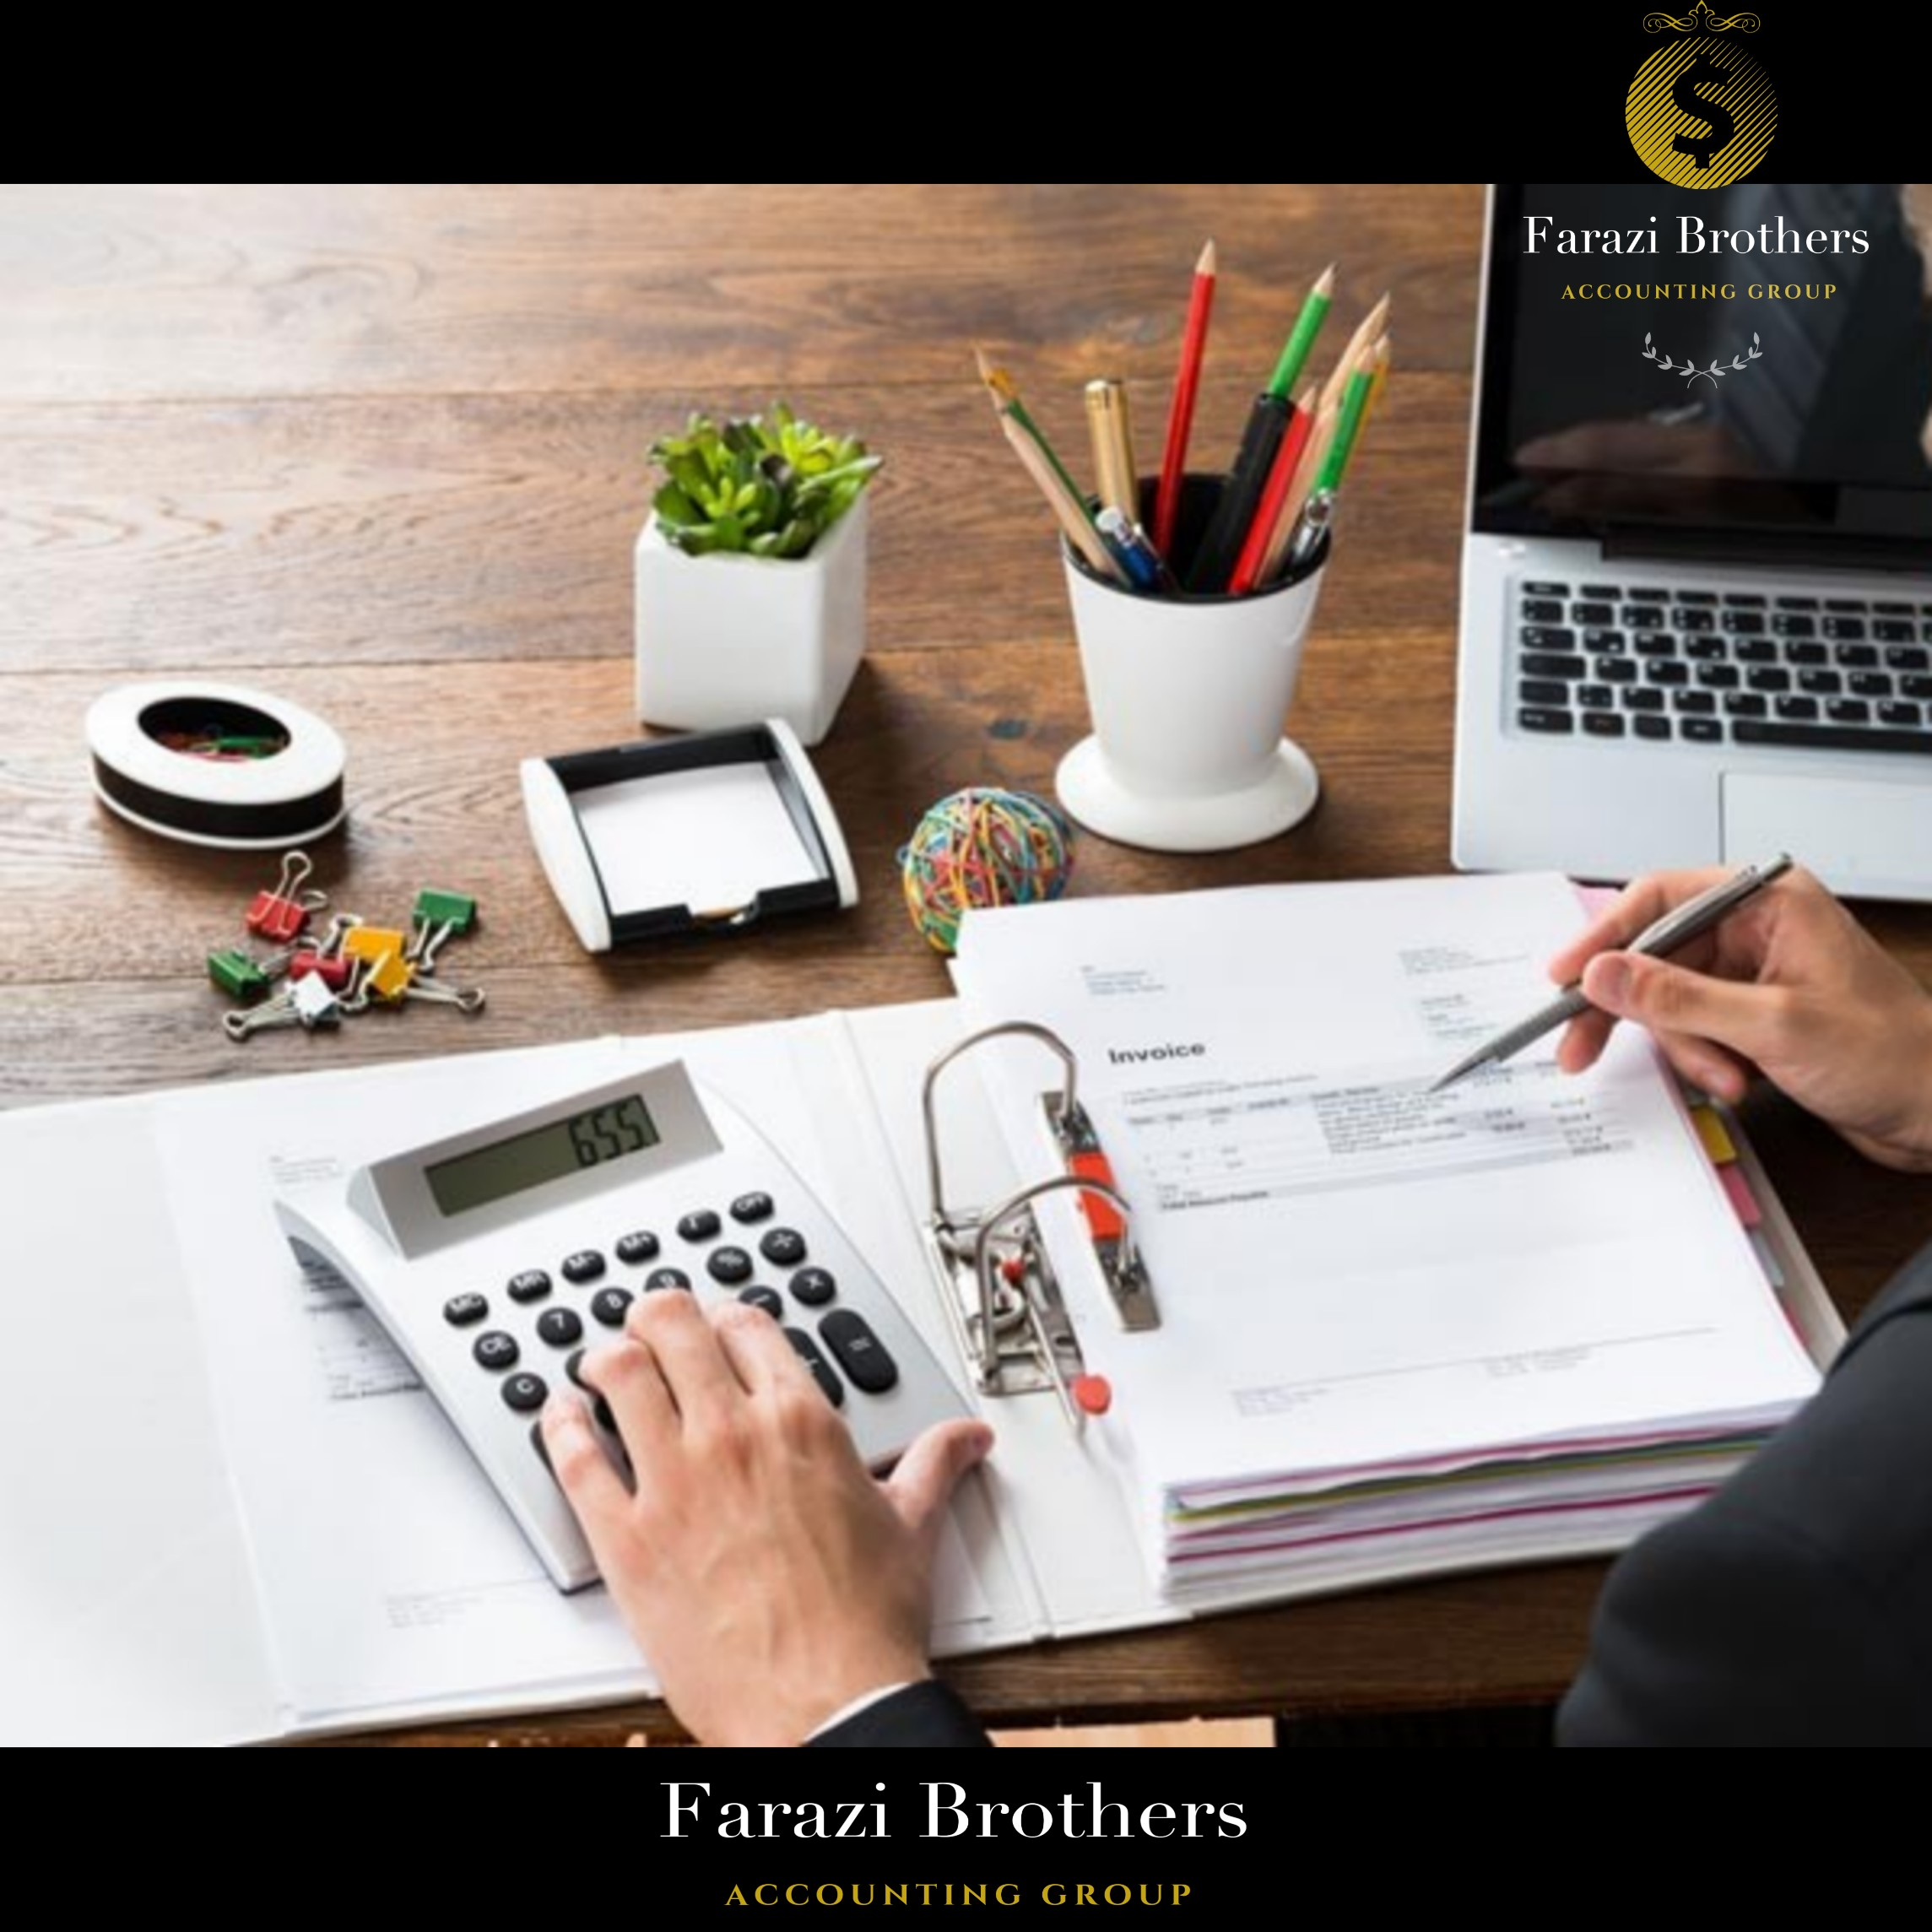 farazi Brothers accounting group